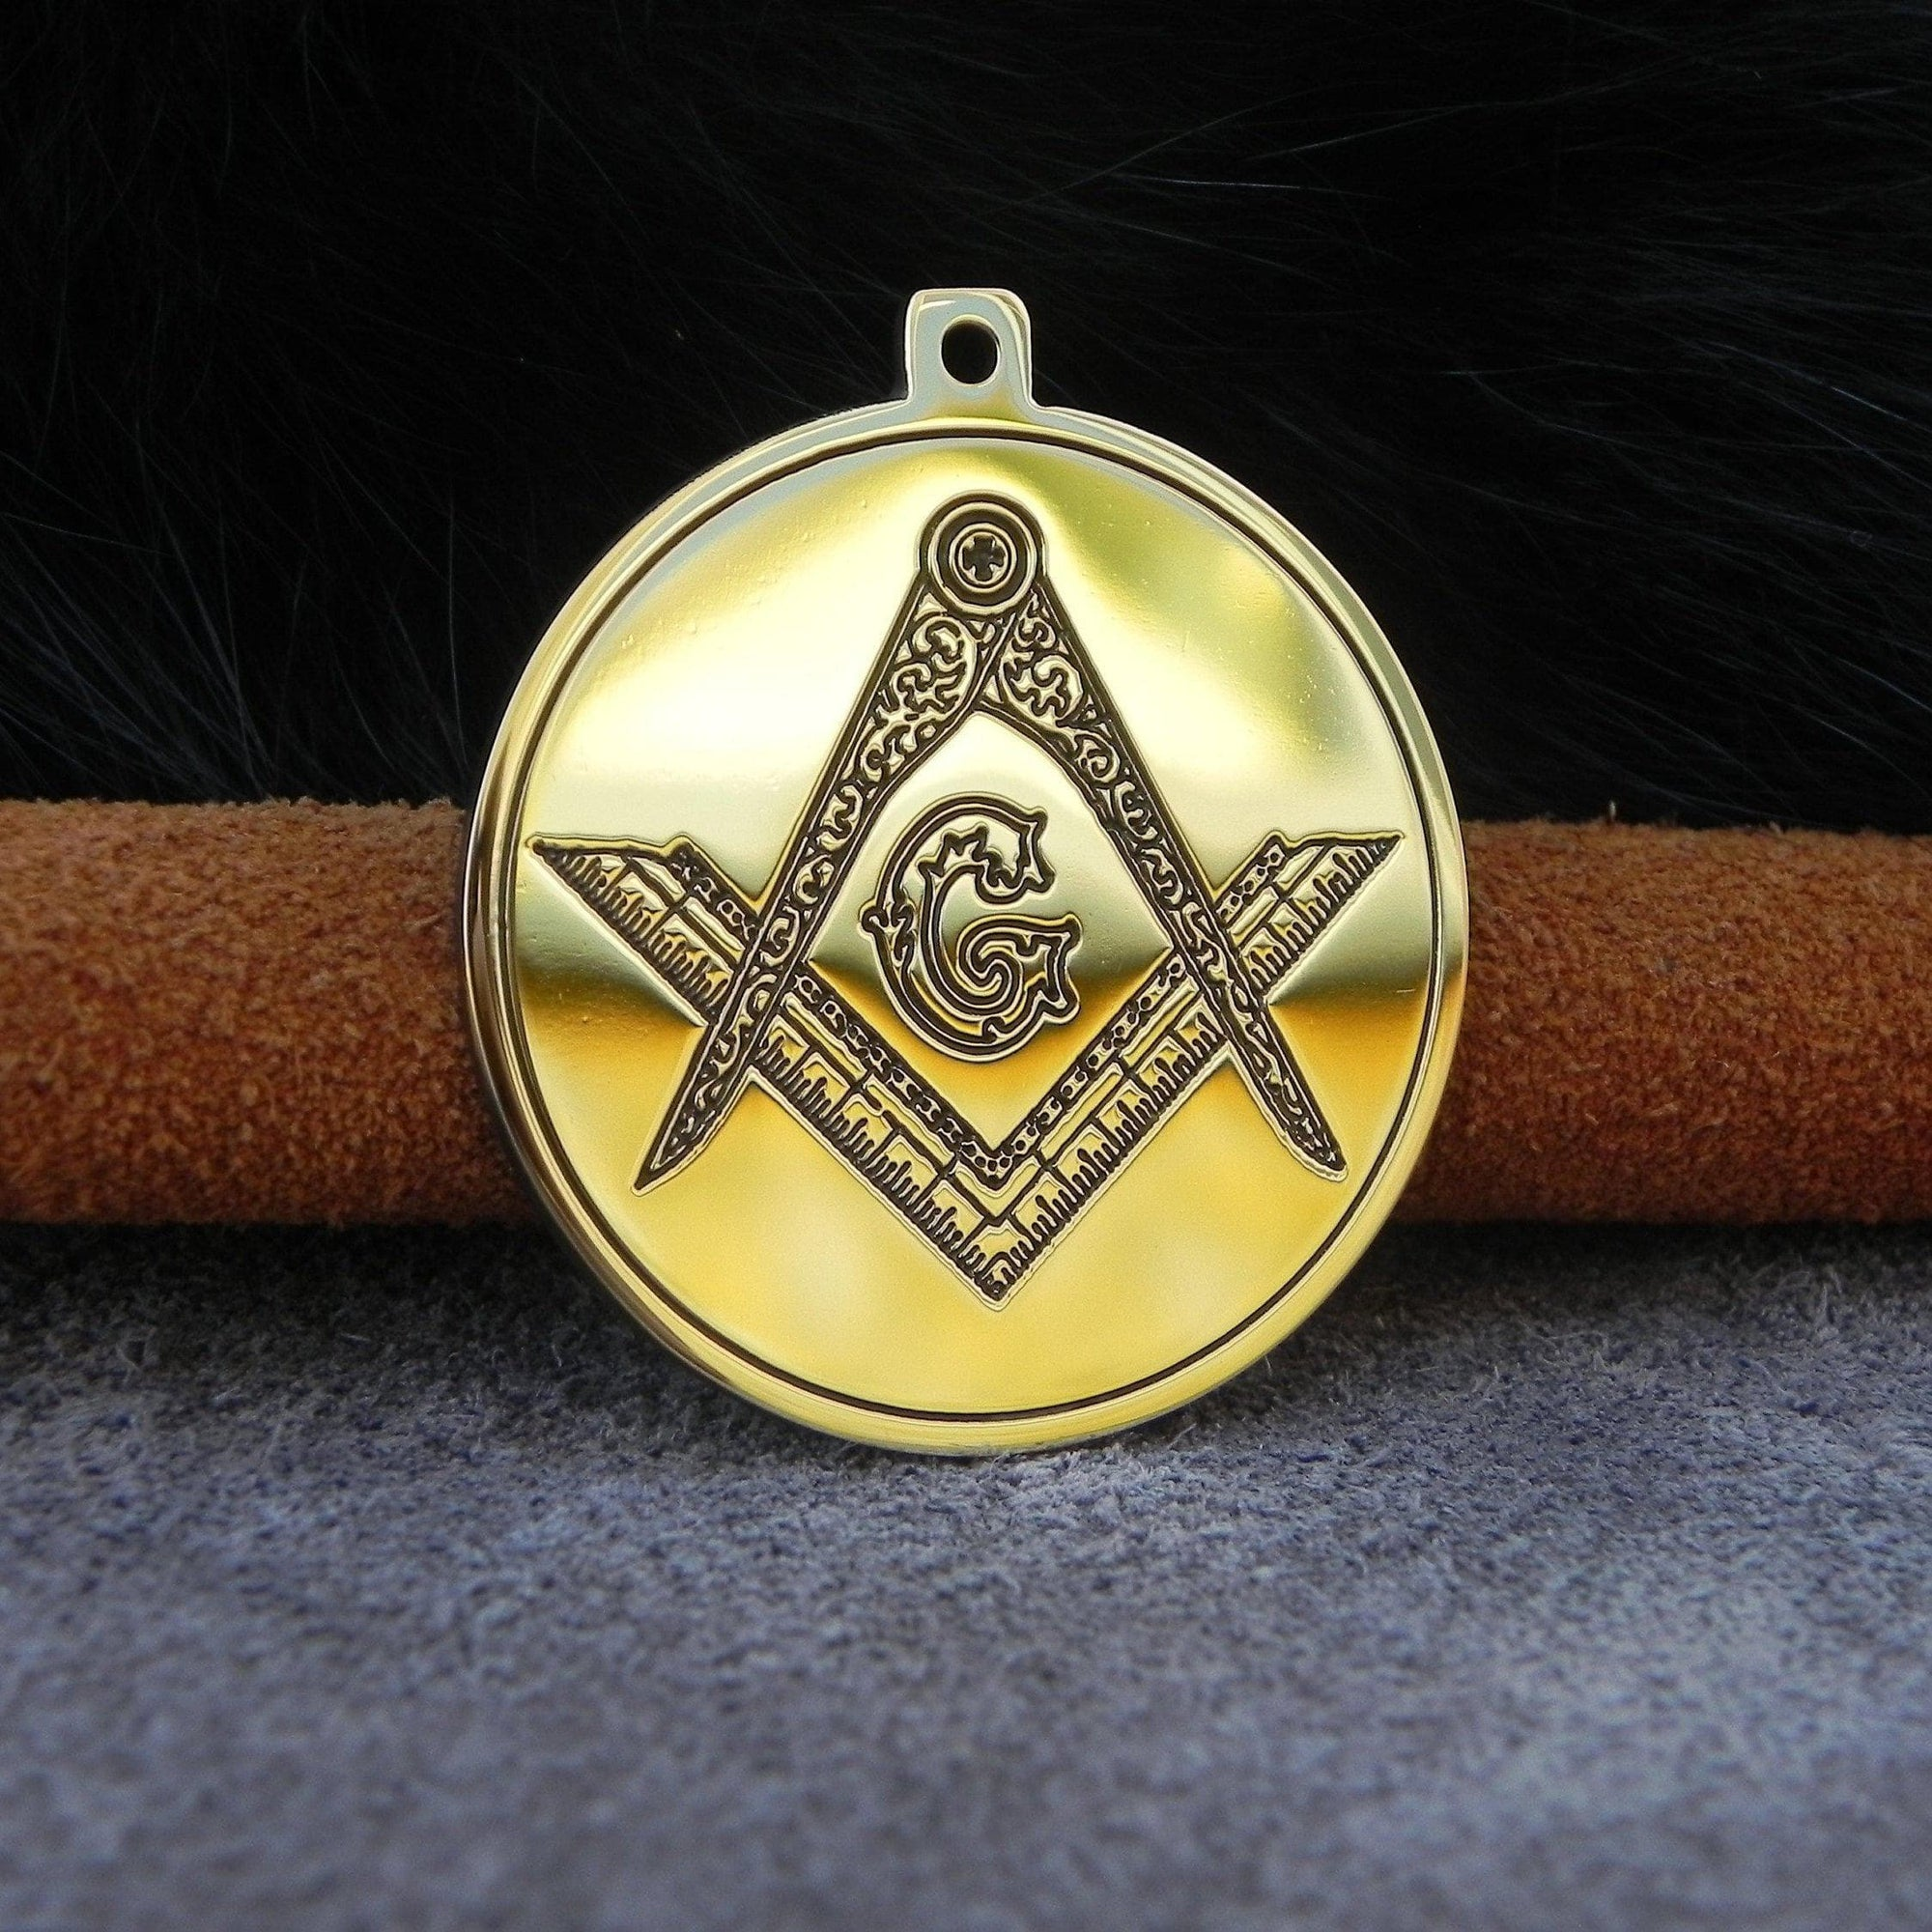 Pendants & Necklaces Templar Freemason Square & Compass Pendant Ancient Treasures Ancientreasures Viking Odin Thor Mjolnir Celtic Ancient Egypt Norse Norse Mythology